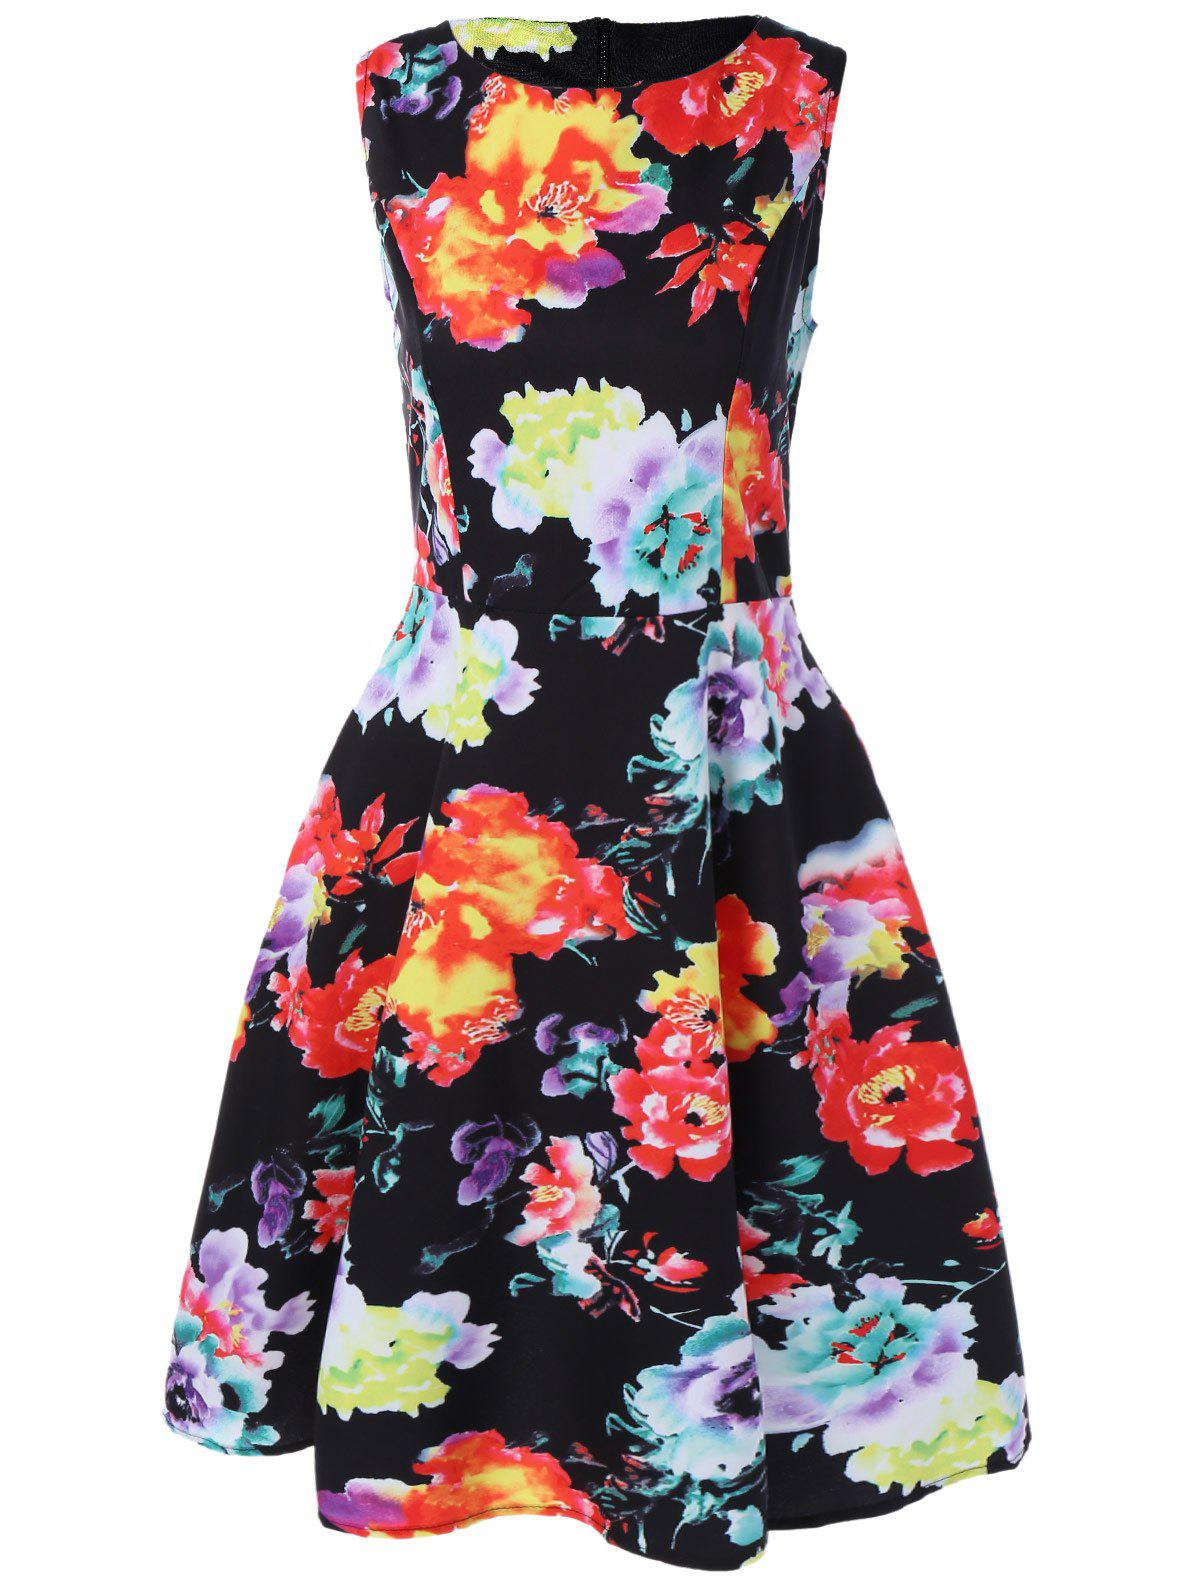 Retro Boat Neck Sleeveless Floral Print Flare Dress - COLORMIX 2XL